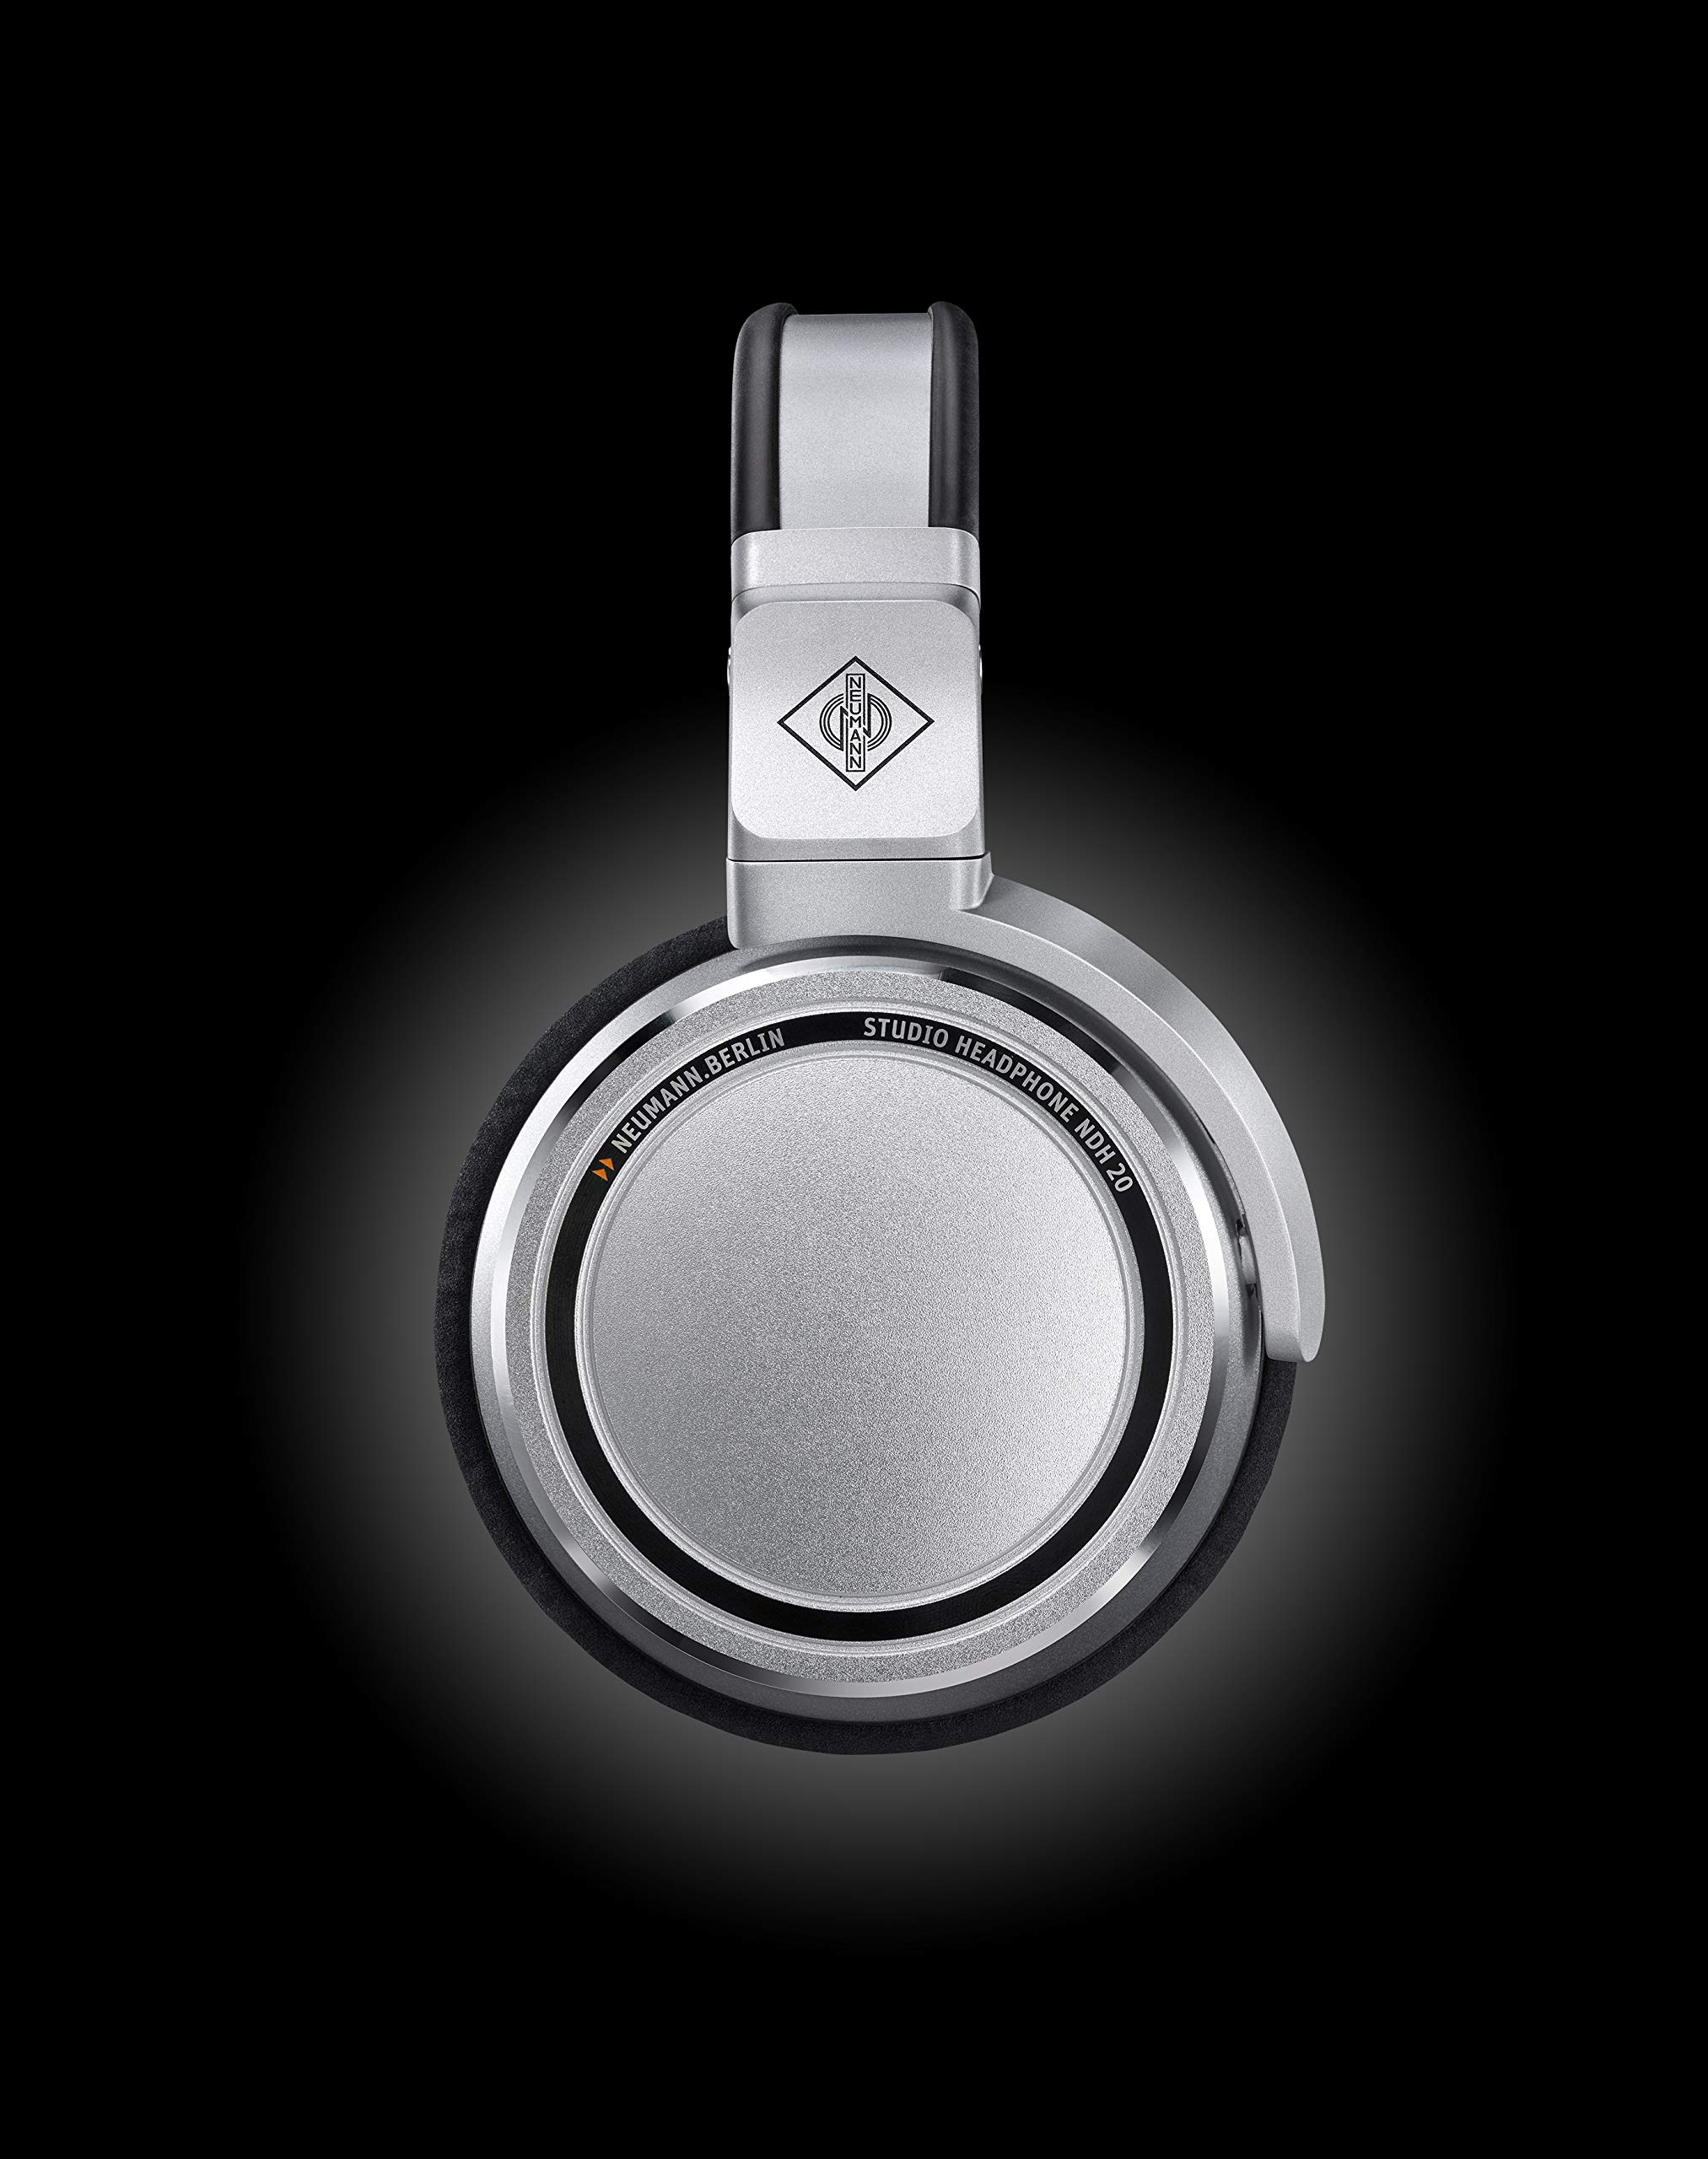 Neumann Studio Headphones (NDH 20 Closed-Back Monitoring He by Neumann (Image #6)